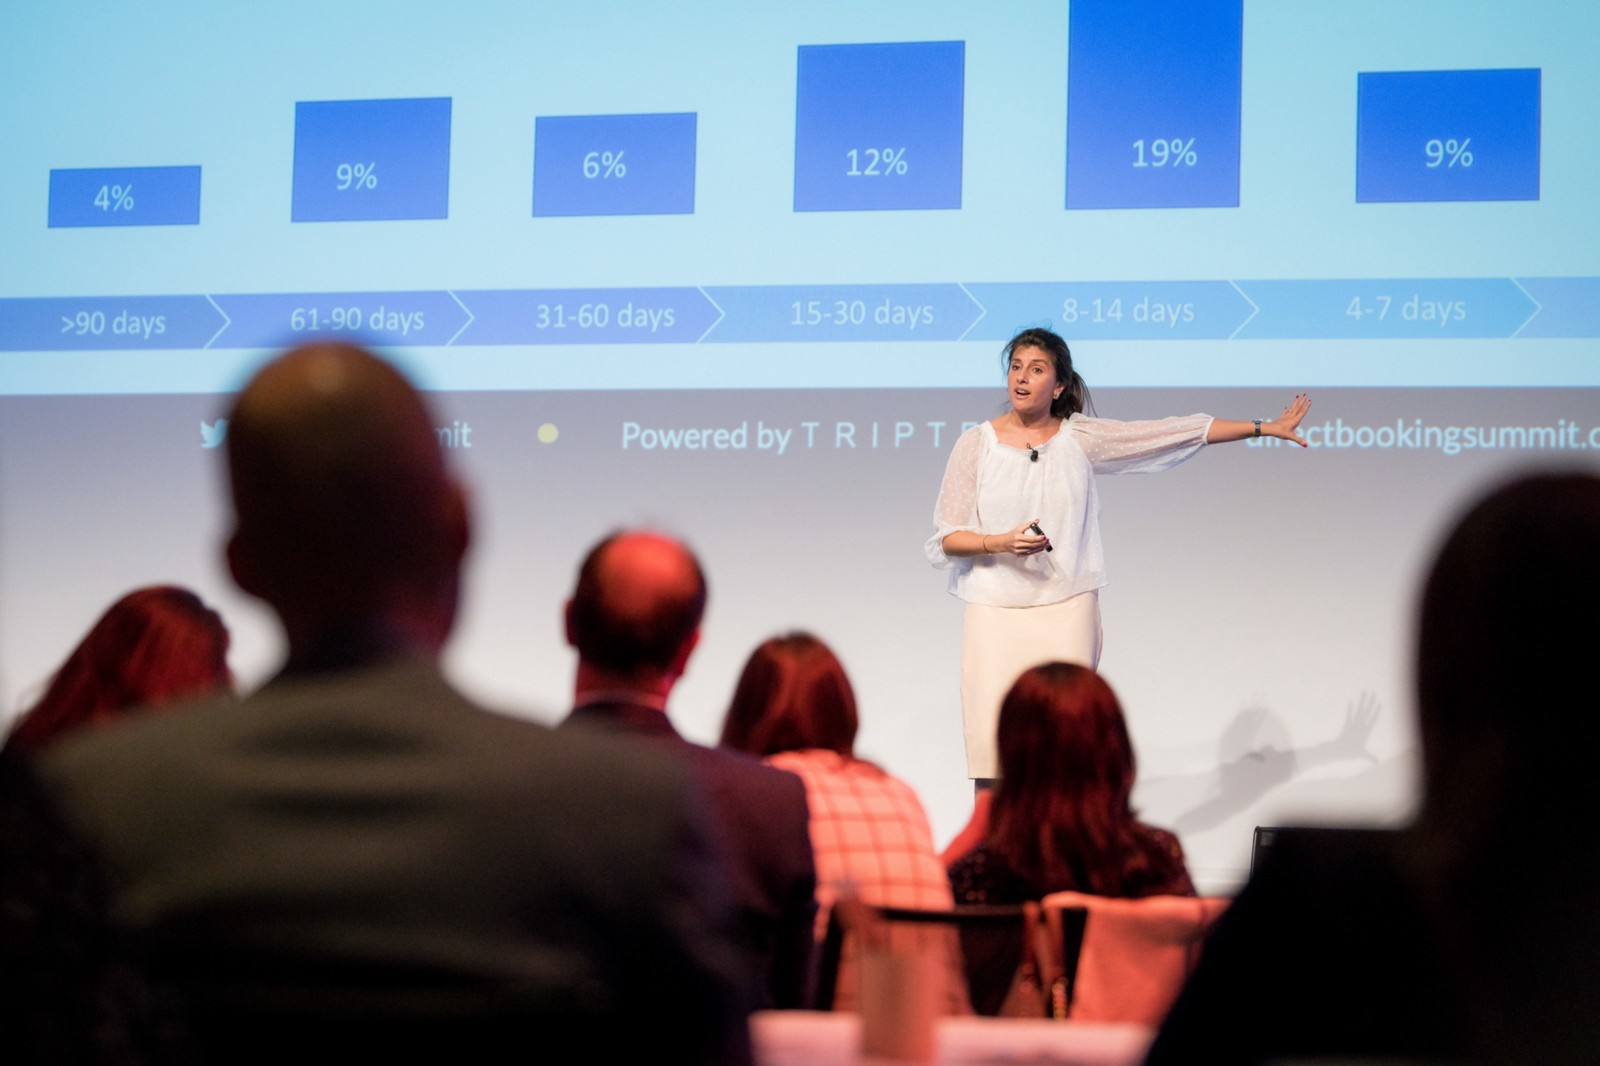 Geneviève Materne delivering one of the most engaging talks from at the Direct Booking Summit.